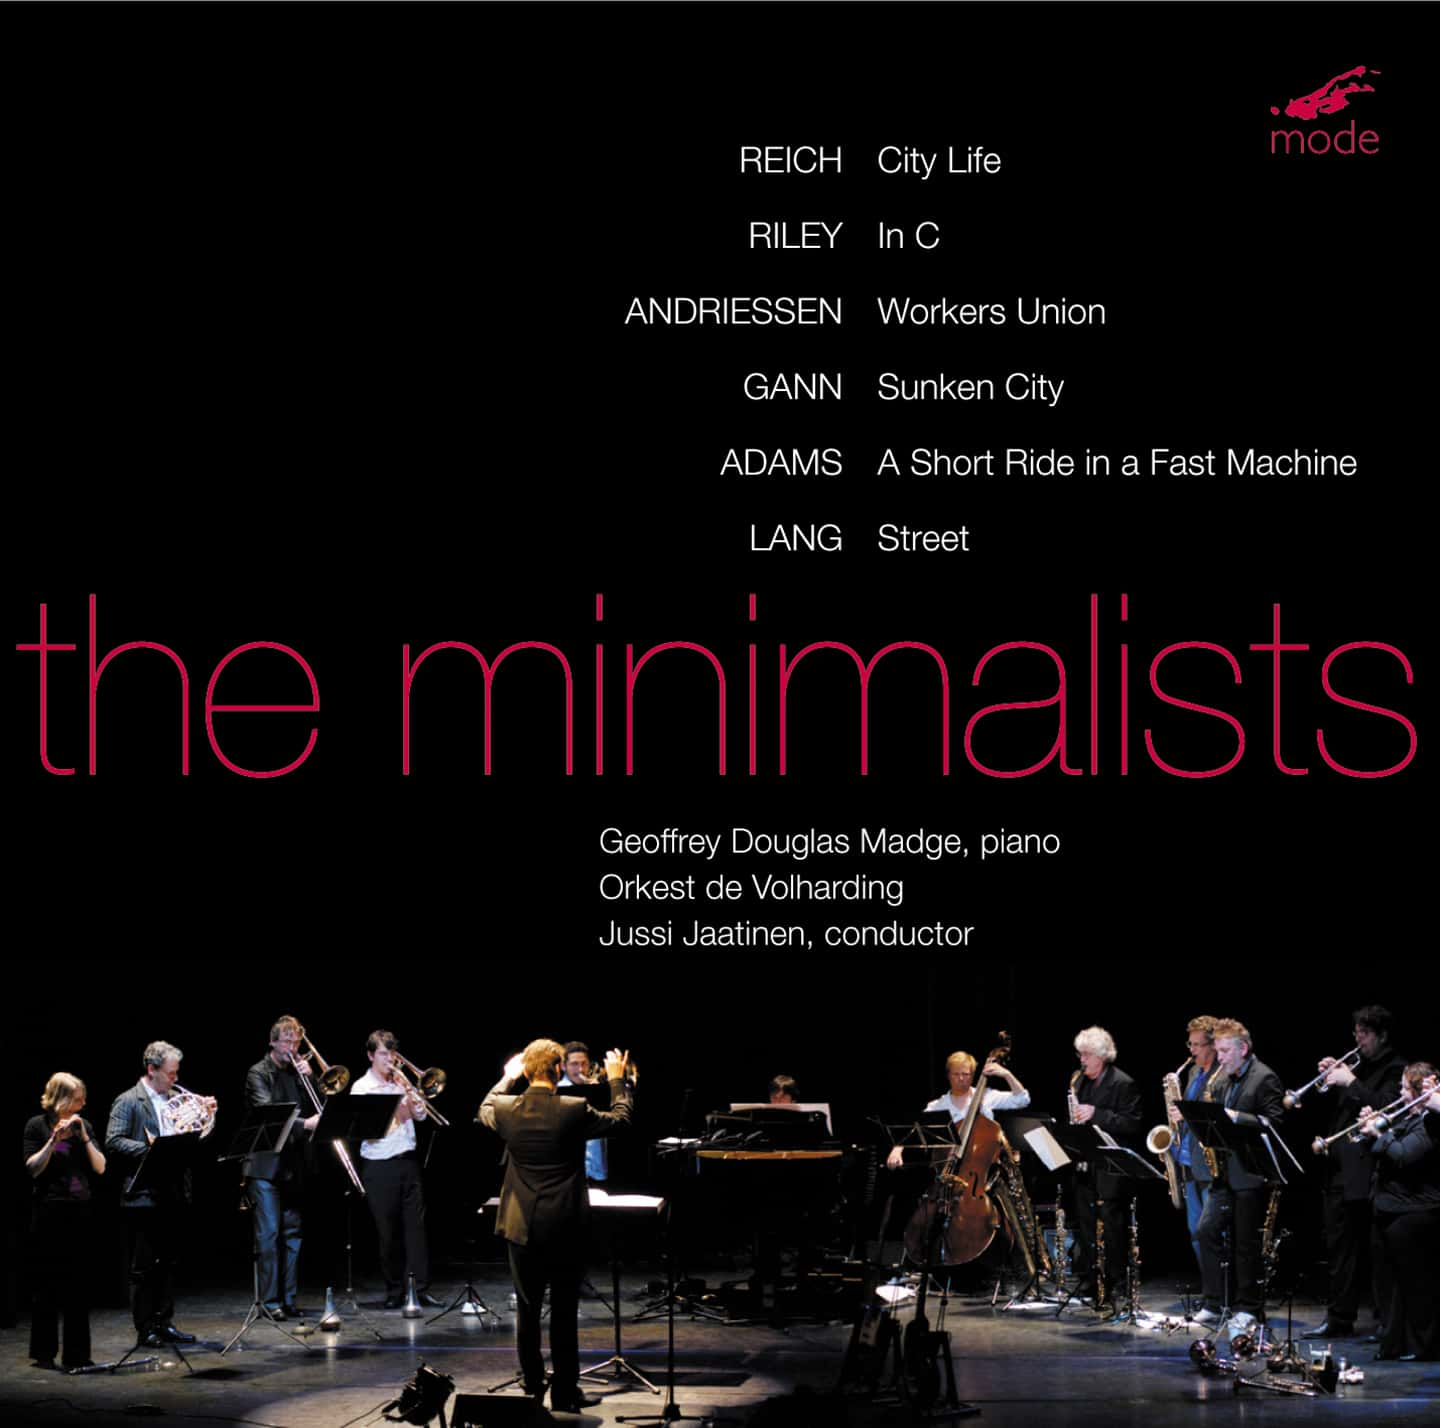 The Minimalists Works By Reich, Riley, Andriessen And Gann